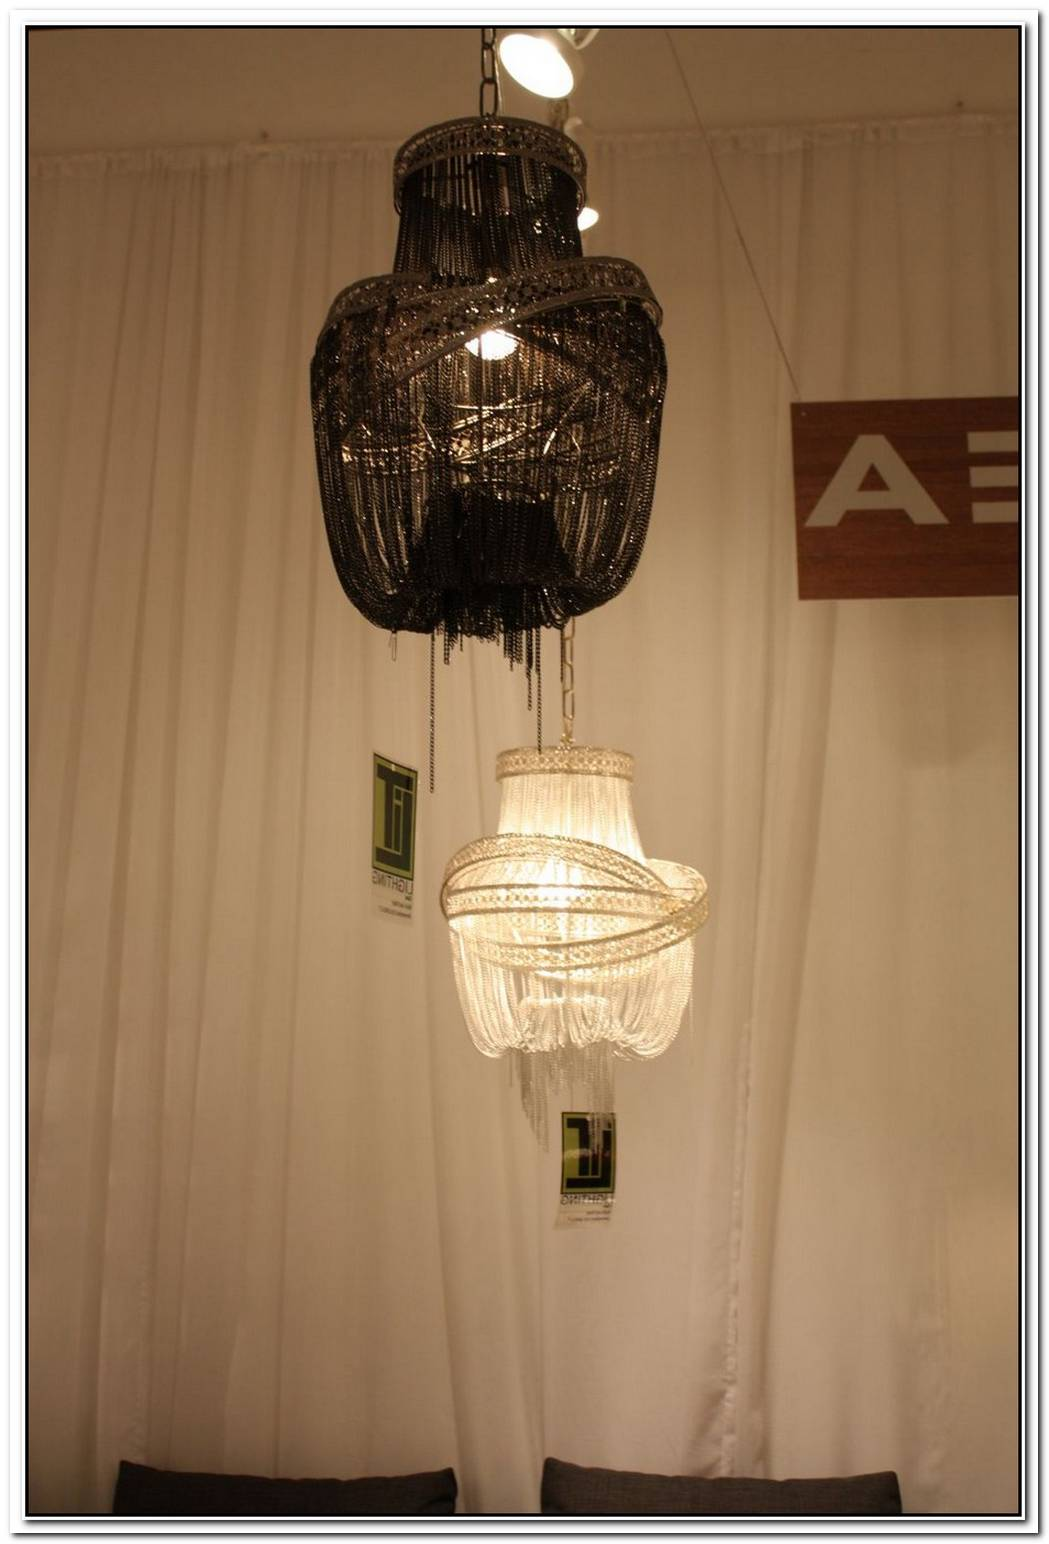 Simple And Chic Orbit 7 Chandelier